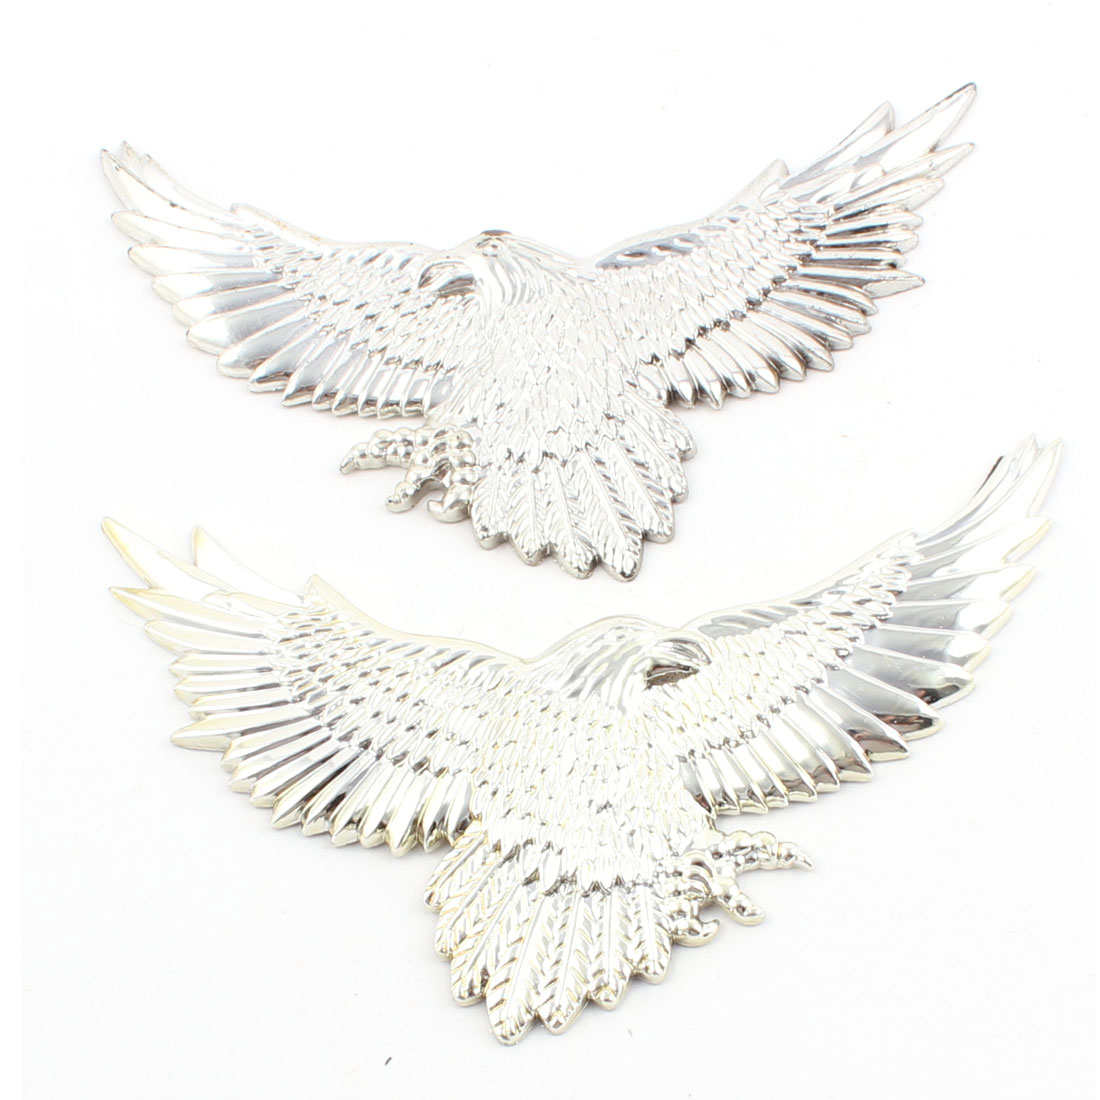 Silver Tone Plastic Eagle Design Car Auto Badge Sticky Sticker Decor Decal 2pcs